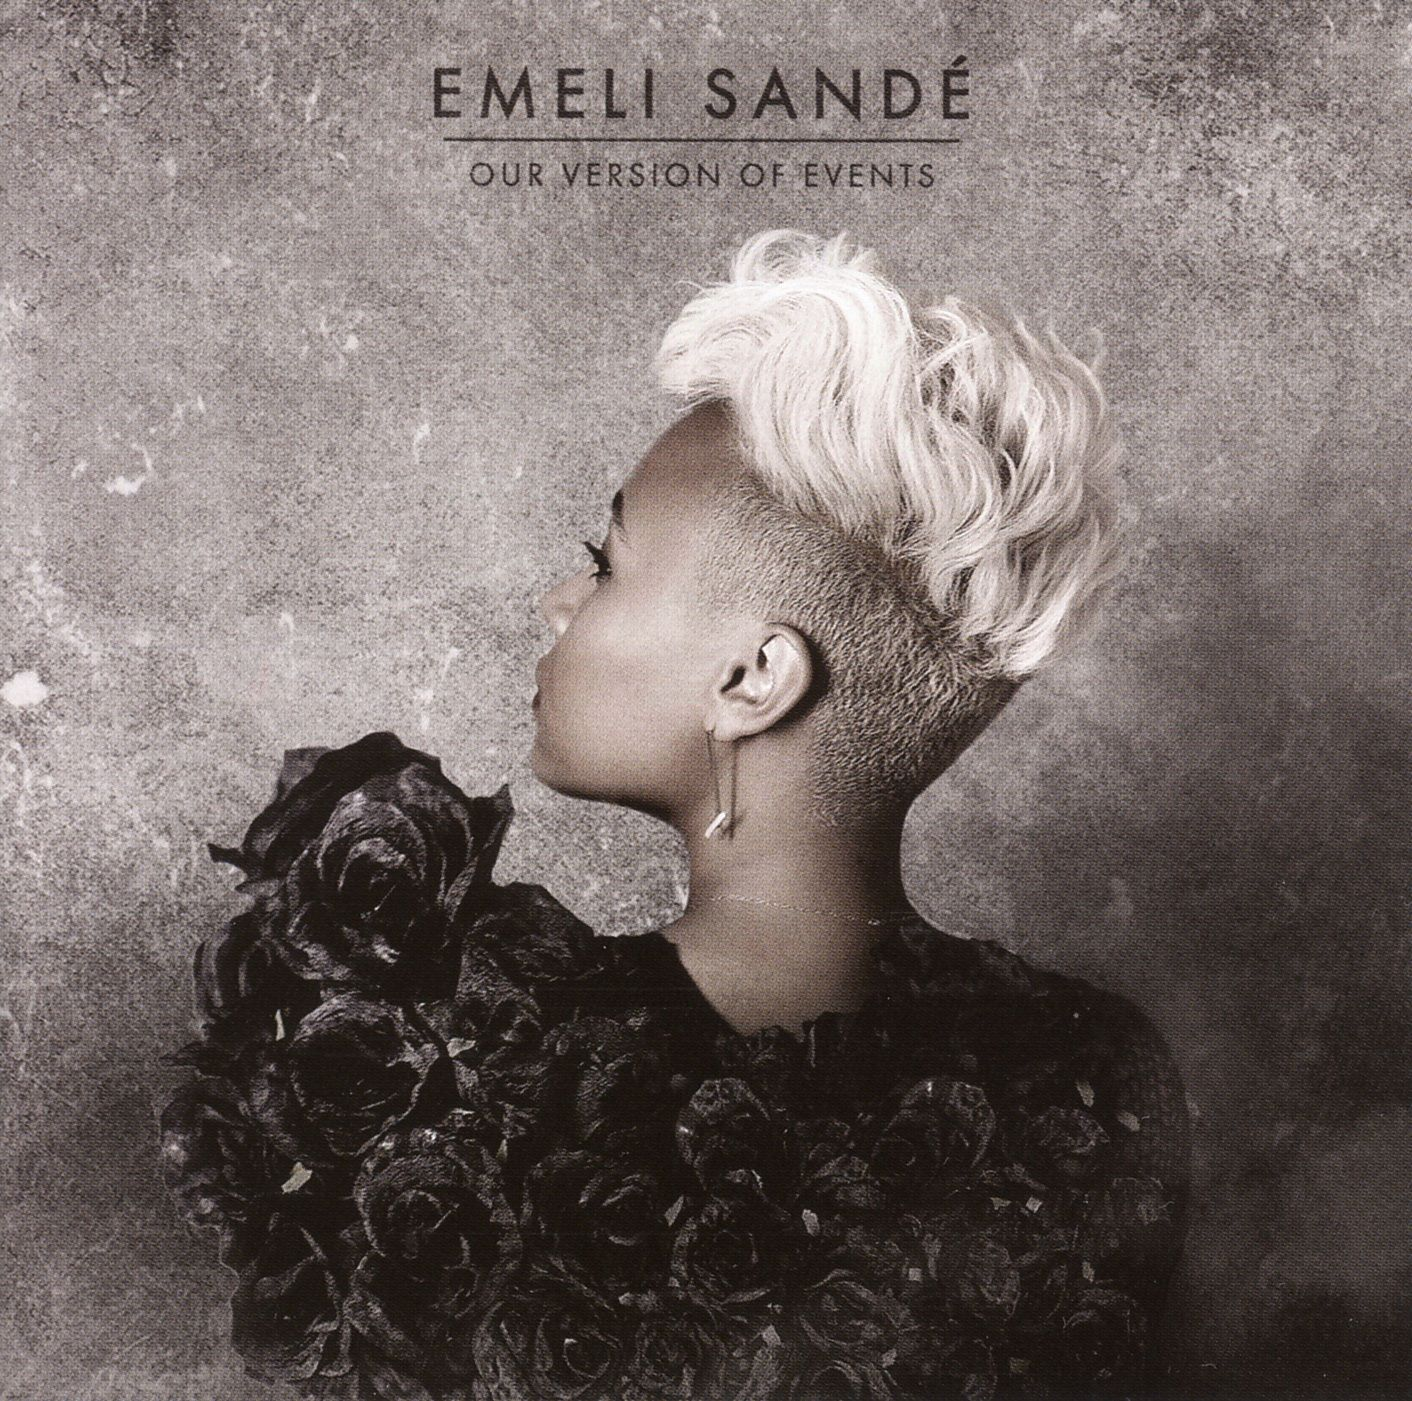 Emeli Sandé - Our Version Of Events album cover